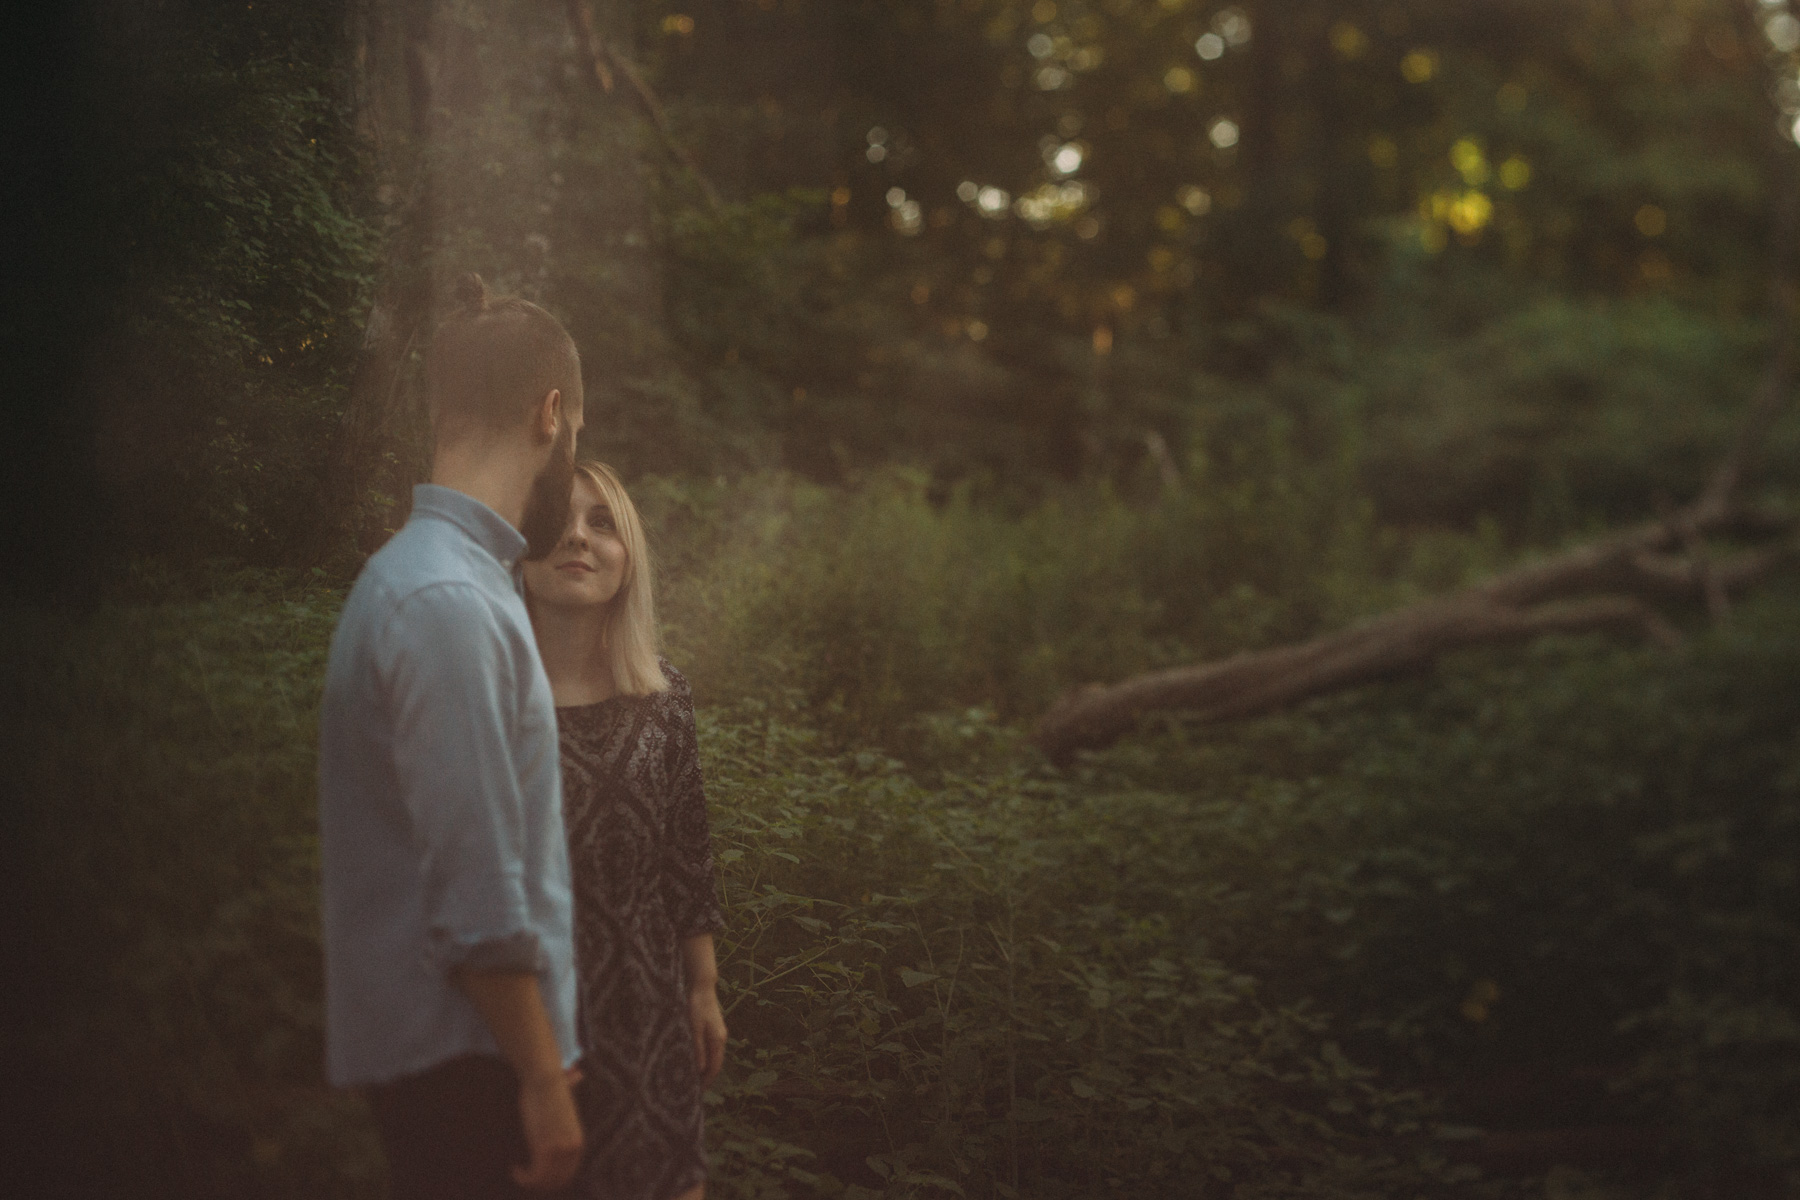 Adventure-engagement-photography-by-Sam-Wong-of-Artanis-Collective_015.jpg